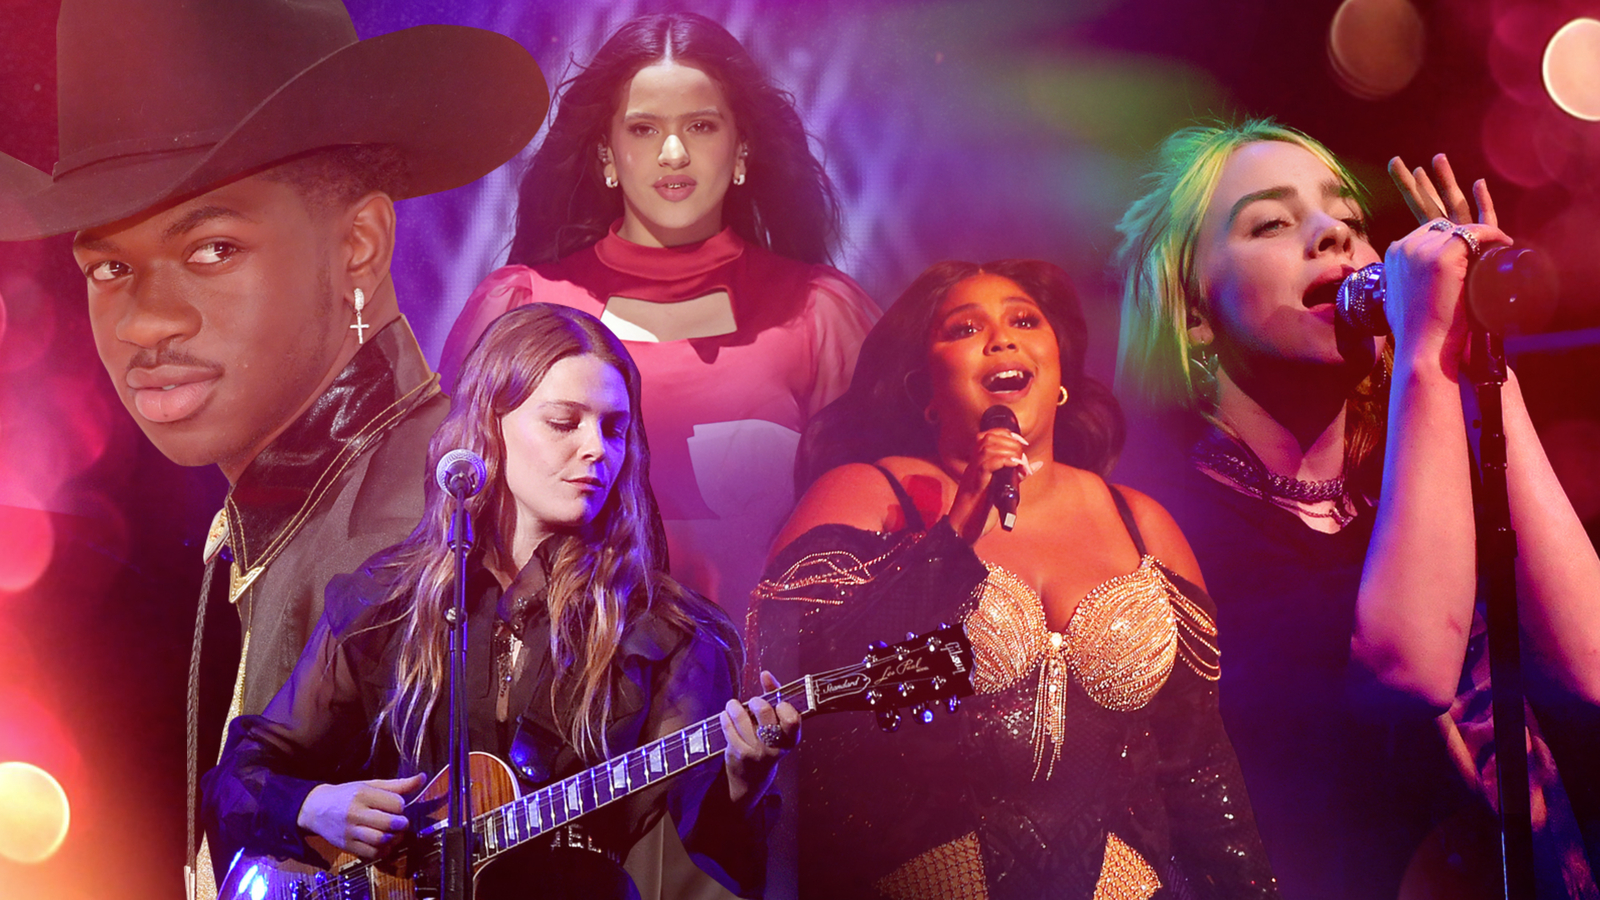 A guide to viewing the 2020 Grammy Awards